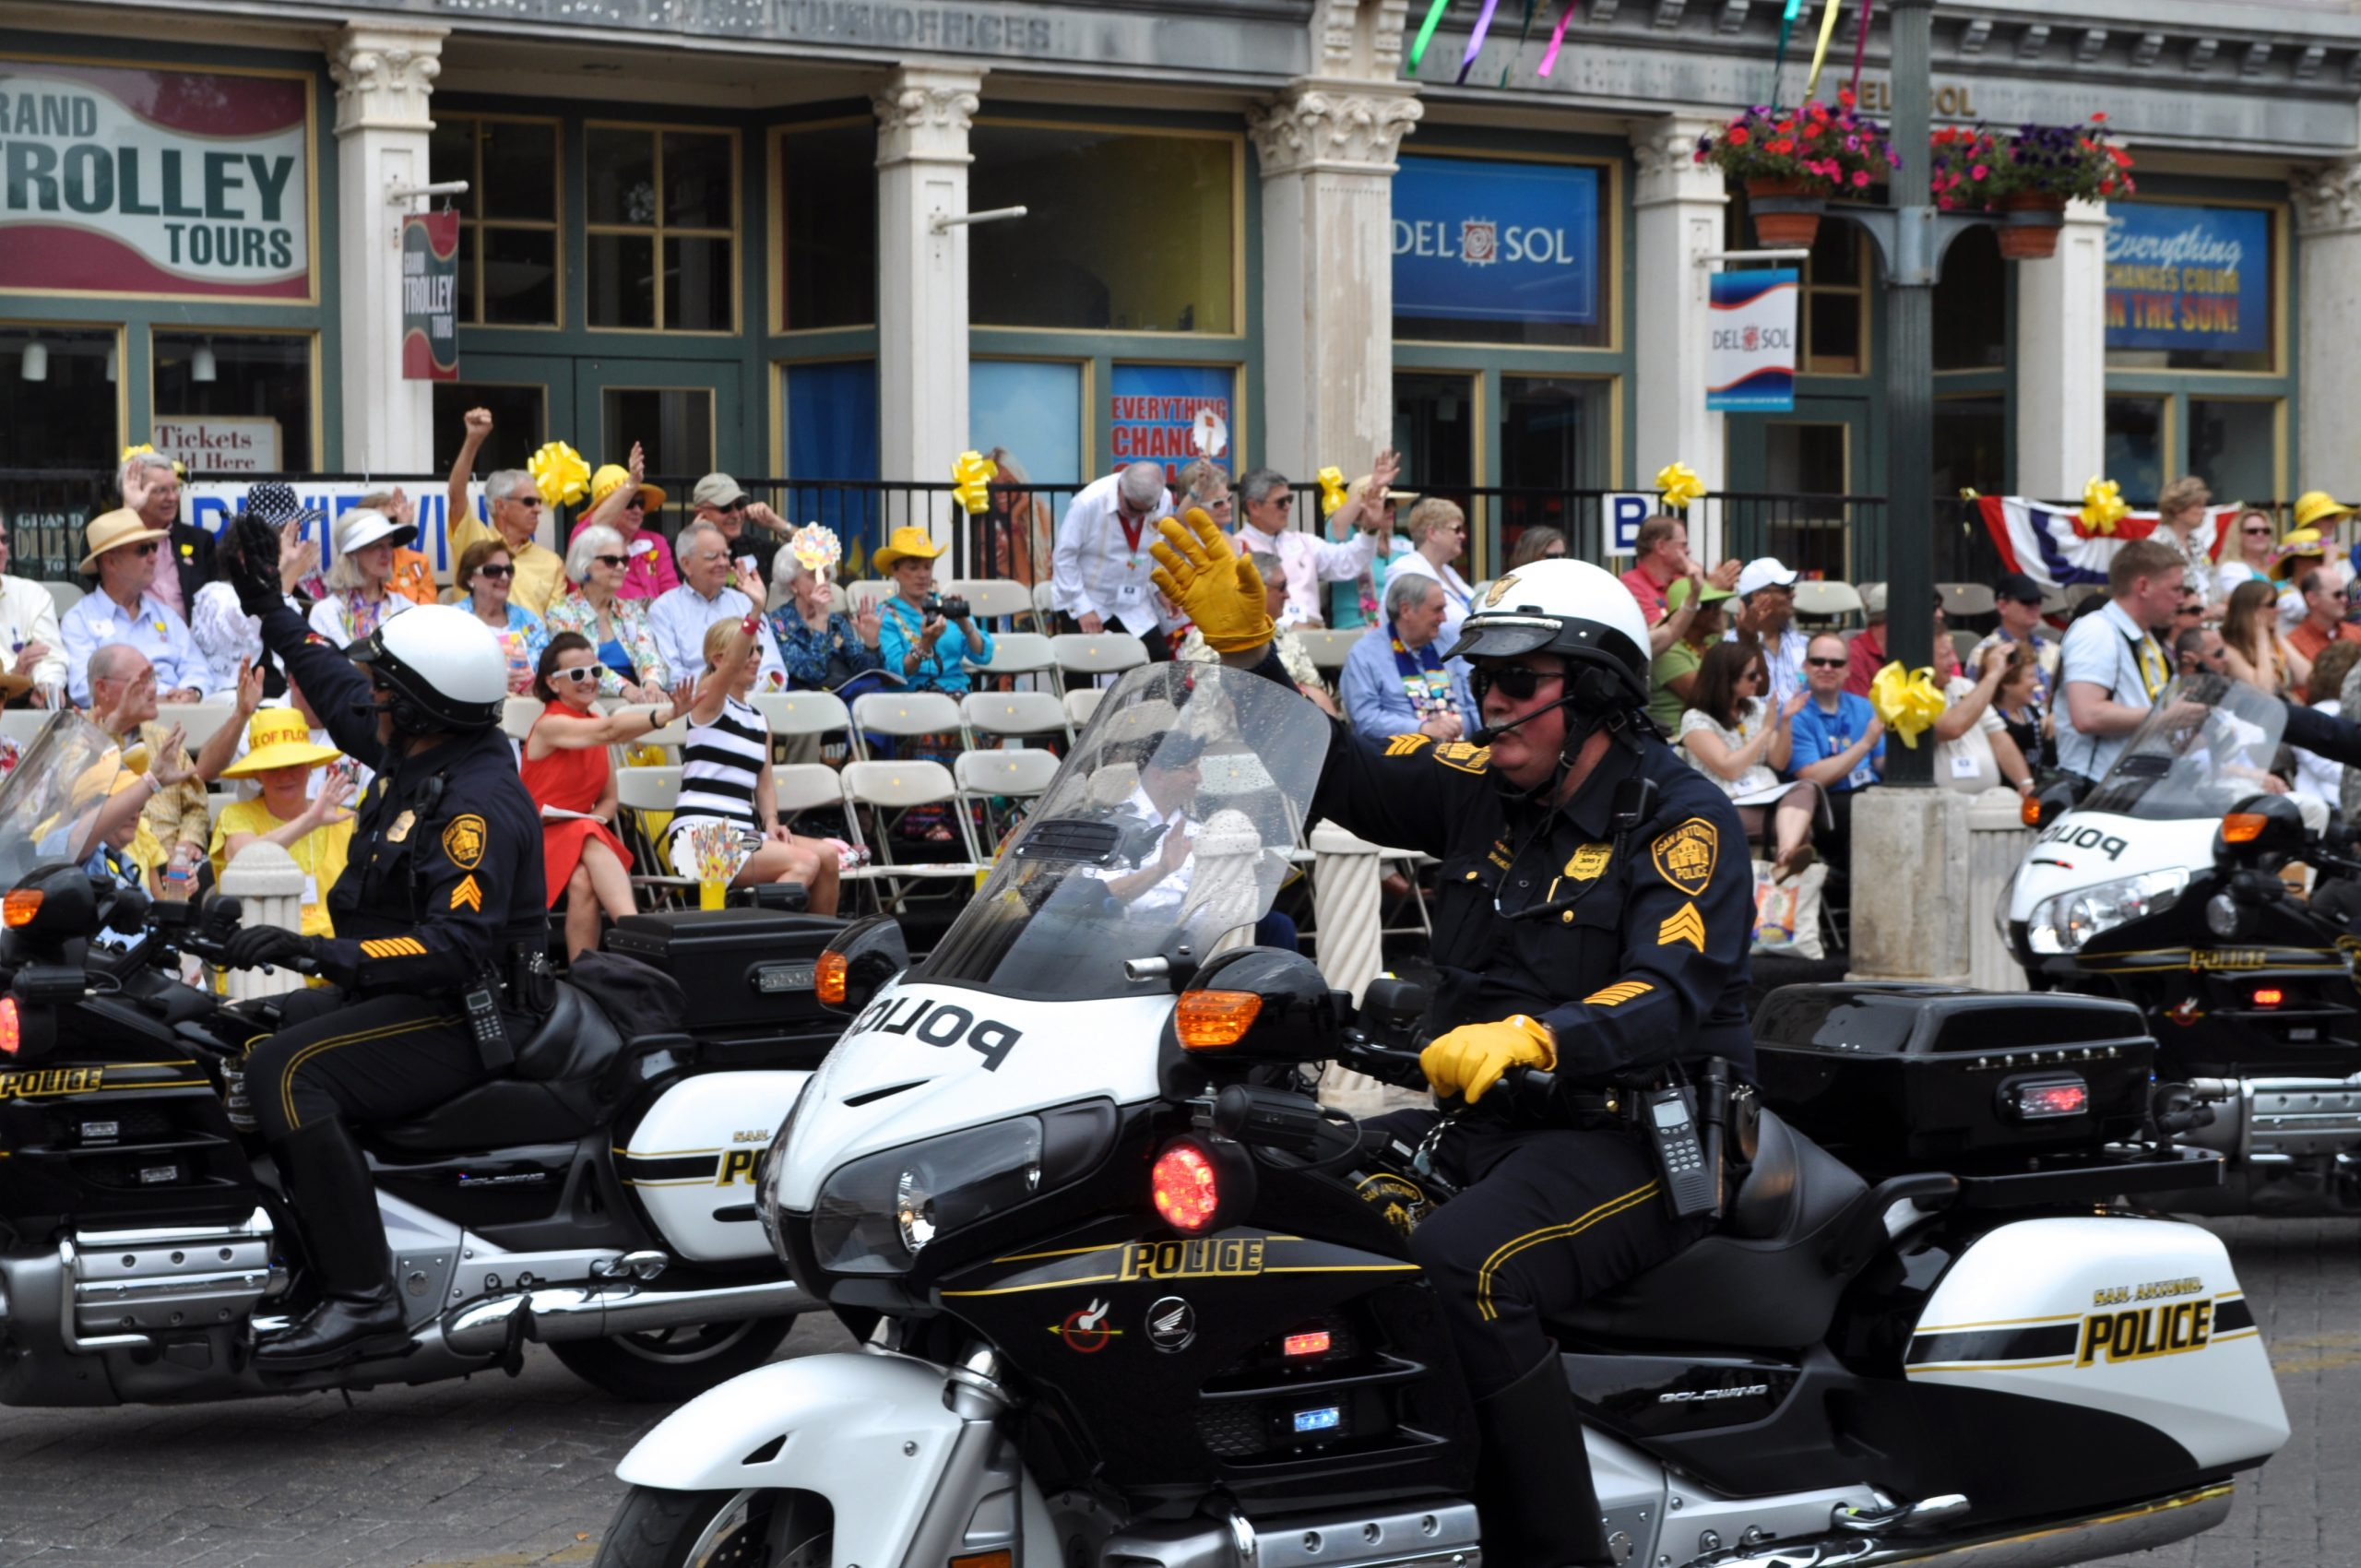 Officers of the San Antonio Police Department Motorcycle Unit wave at the thronging crowds at Alamo Plaza during the Battle of the Flowers parade (2013). Photo by Iris Dimmick.